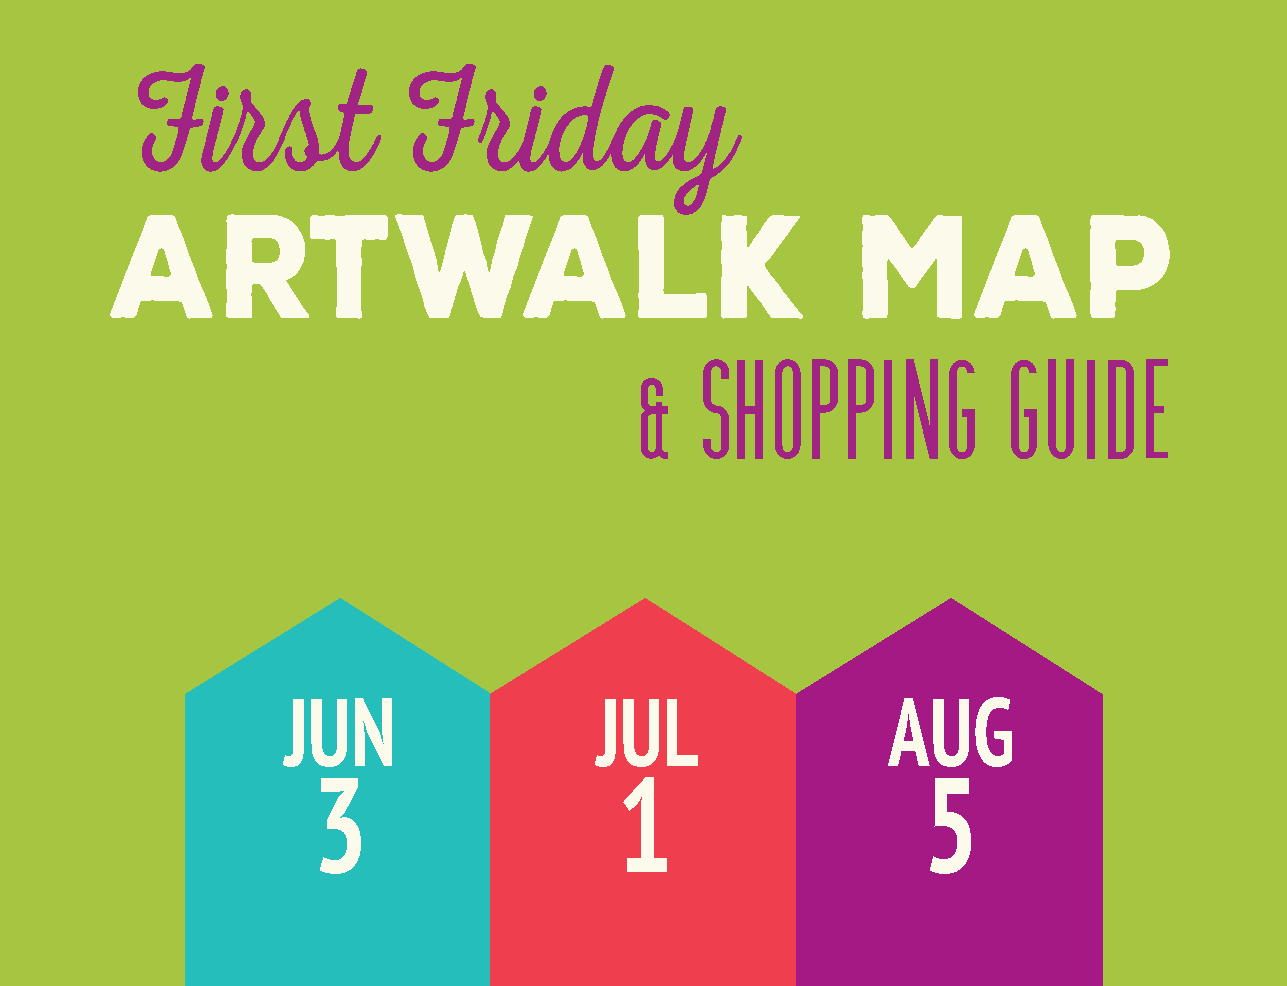 VIEW AND PRINT THE LATEST ARTWALK MAP!